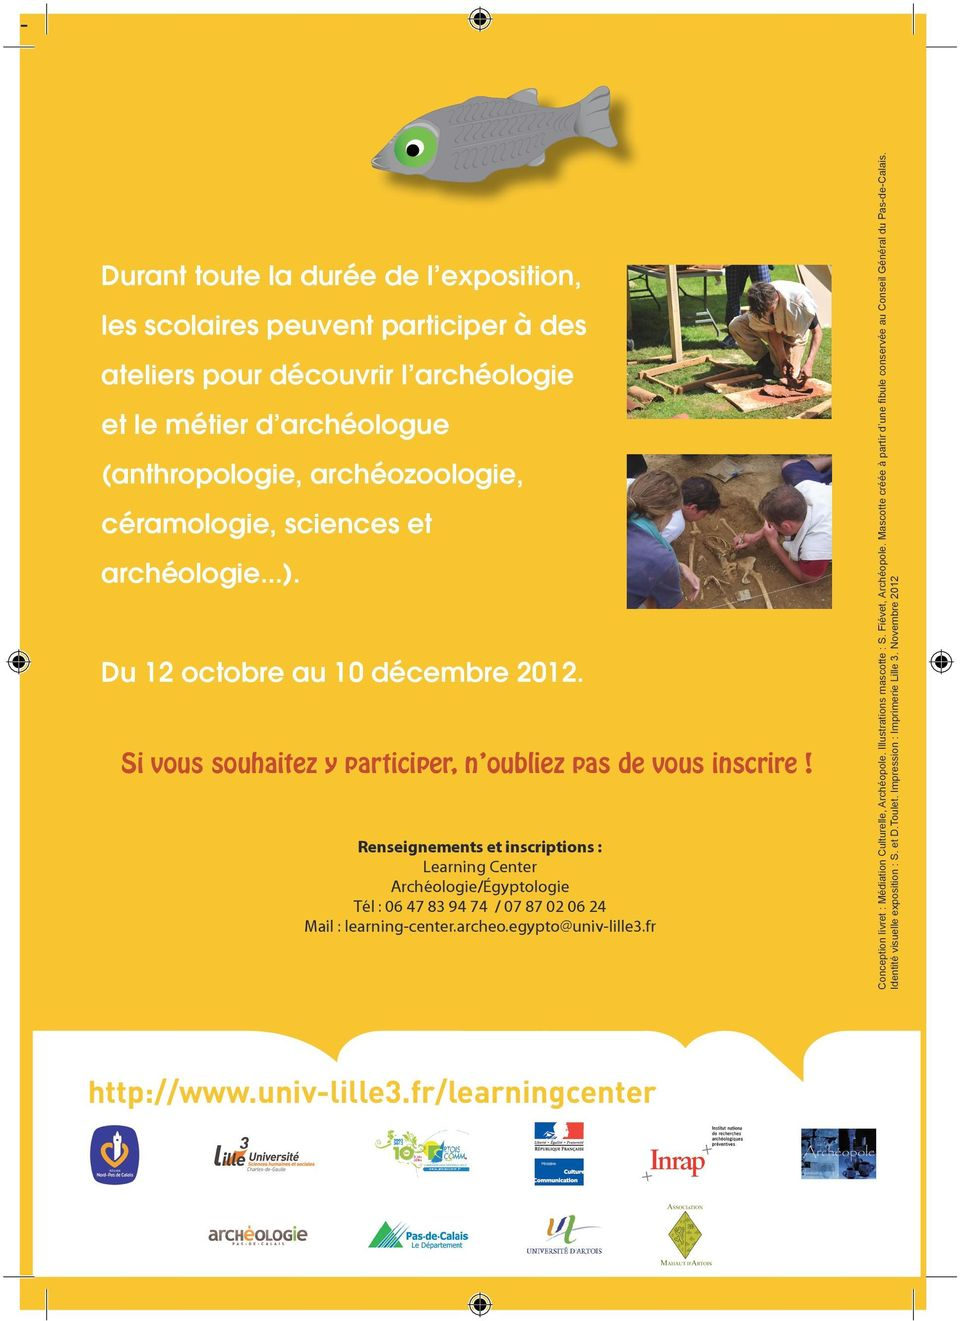 Renseignements et inscriptions : Learning Center Archéologie/égyptologie Tél : 06 47 83 94 74 / 07 87 02 06 24 Mail : learning-center.archeo.egypto@univ-lille3.